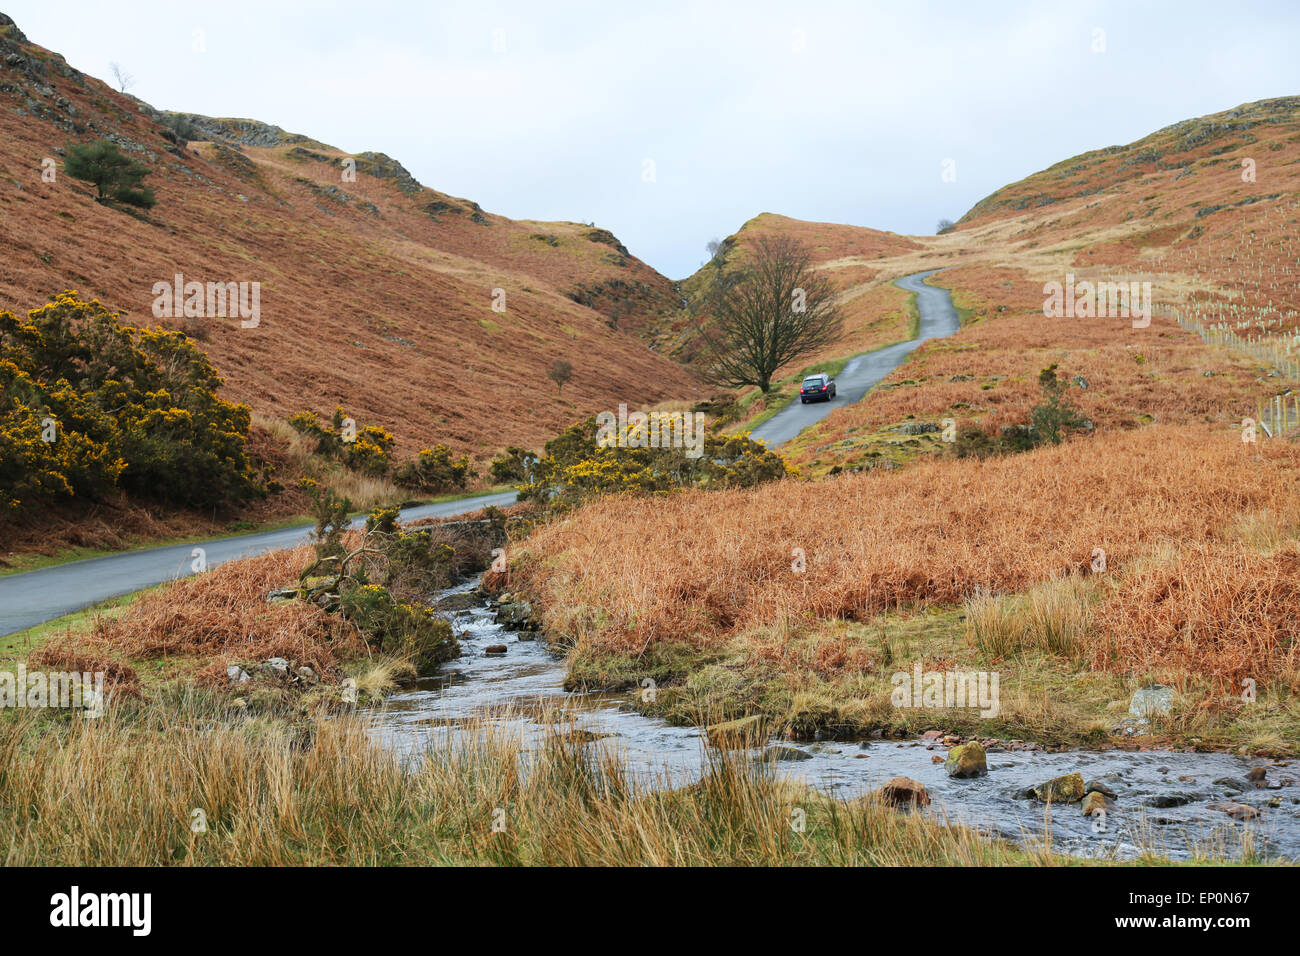 Car driving uphill in Lake District, UK - Stock Image